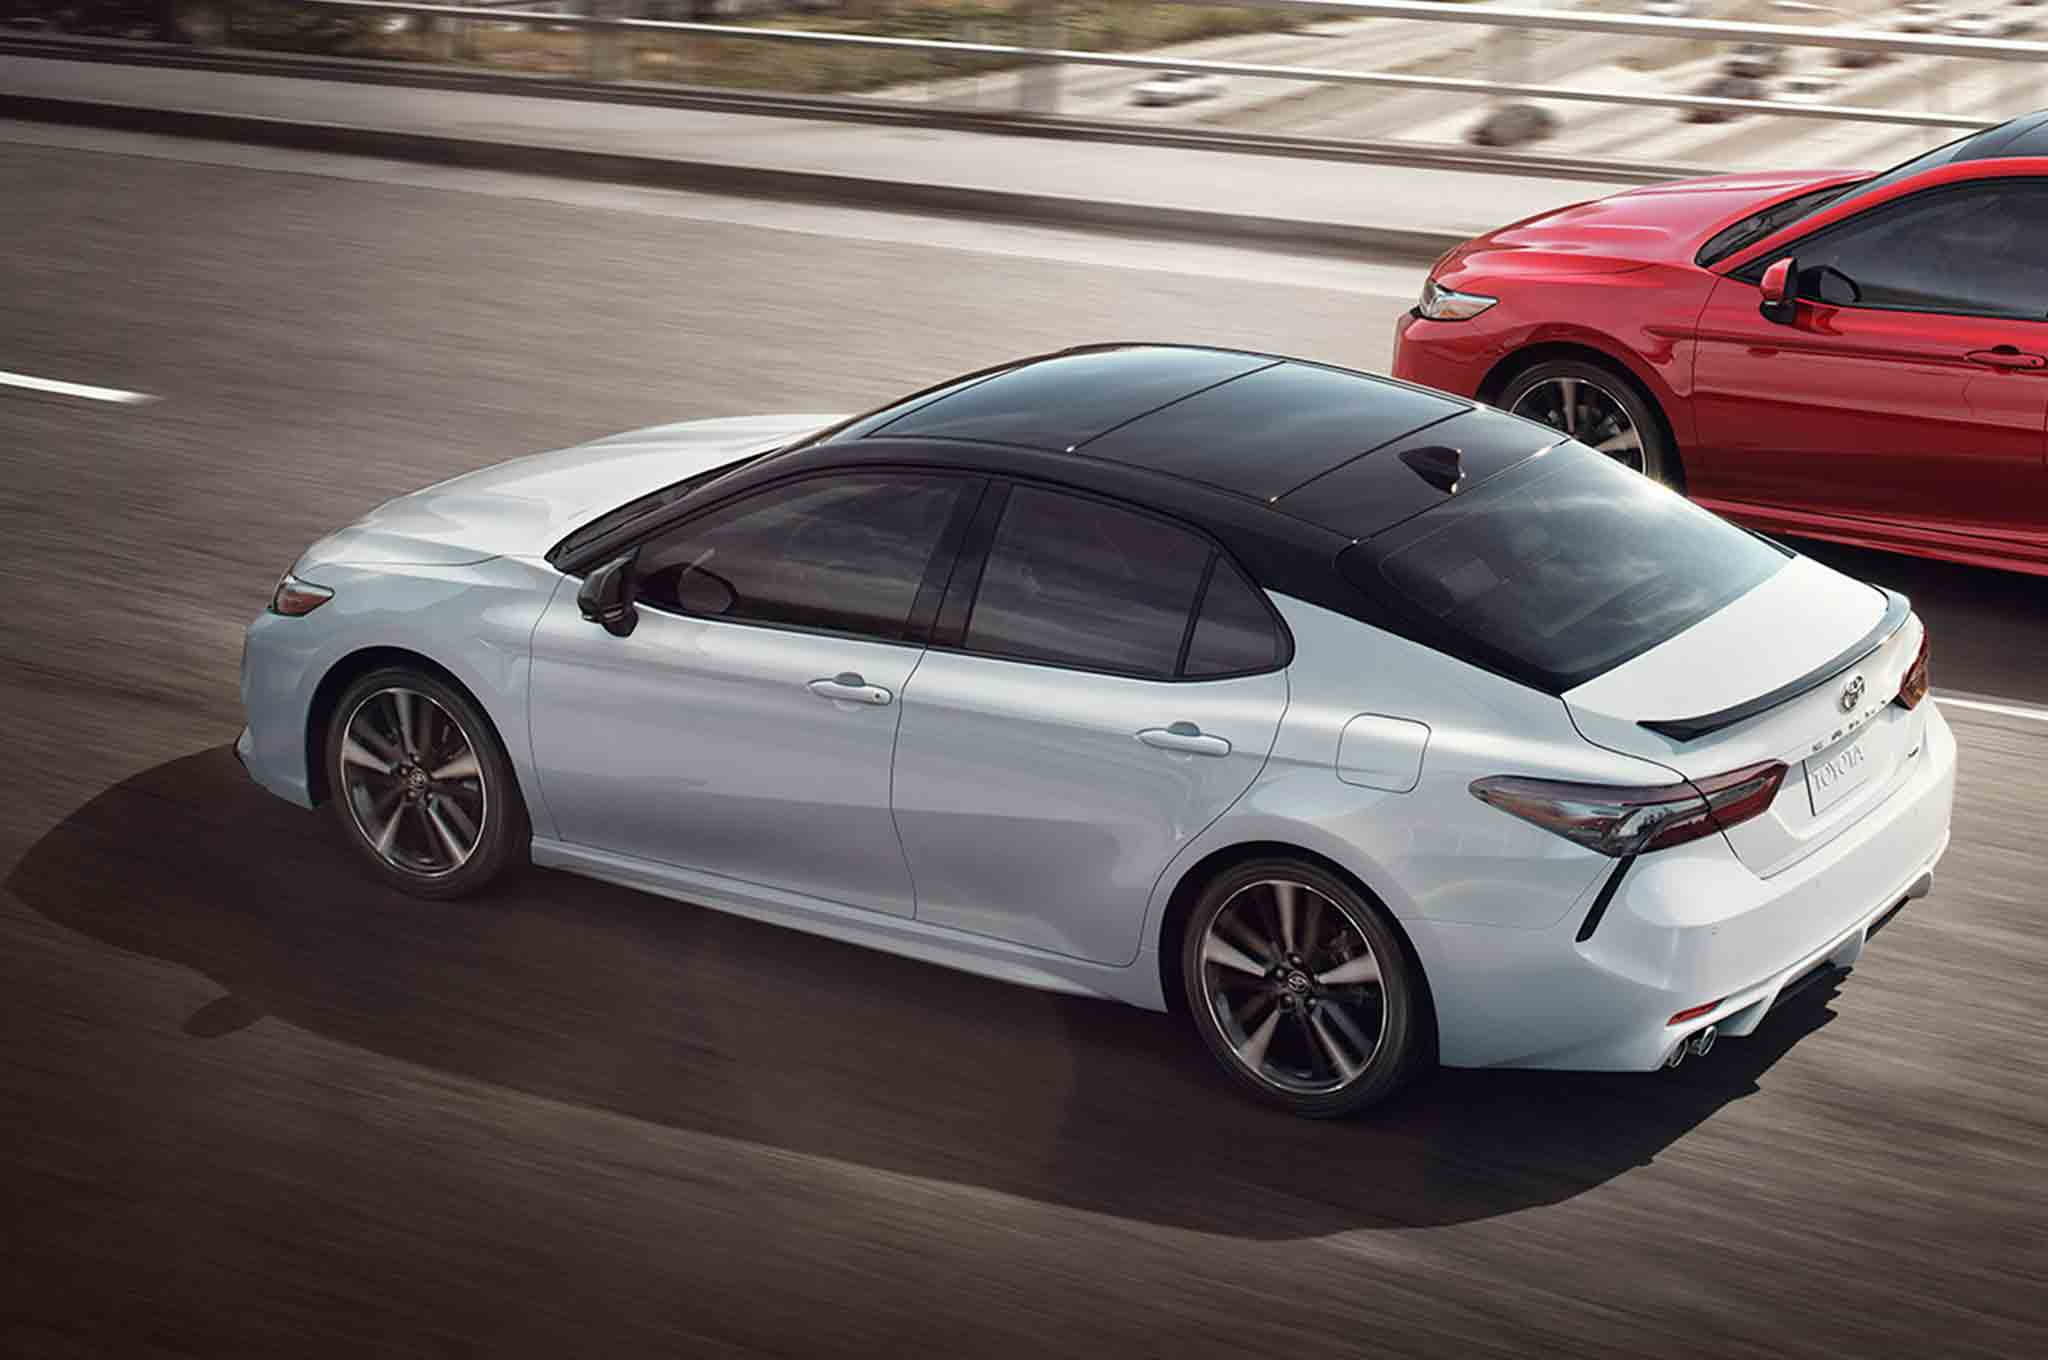 2018-Toyota-Camry-XSE-rear-three-quarter-in-motion-03.jpg